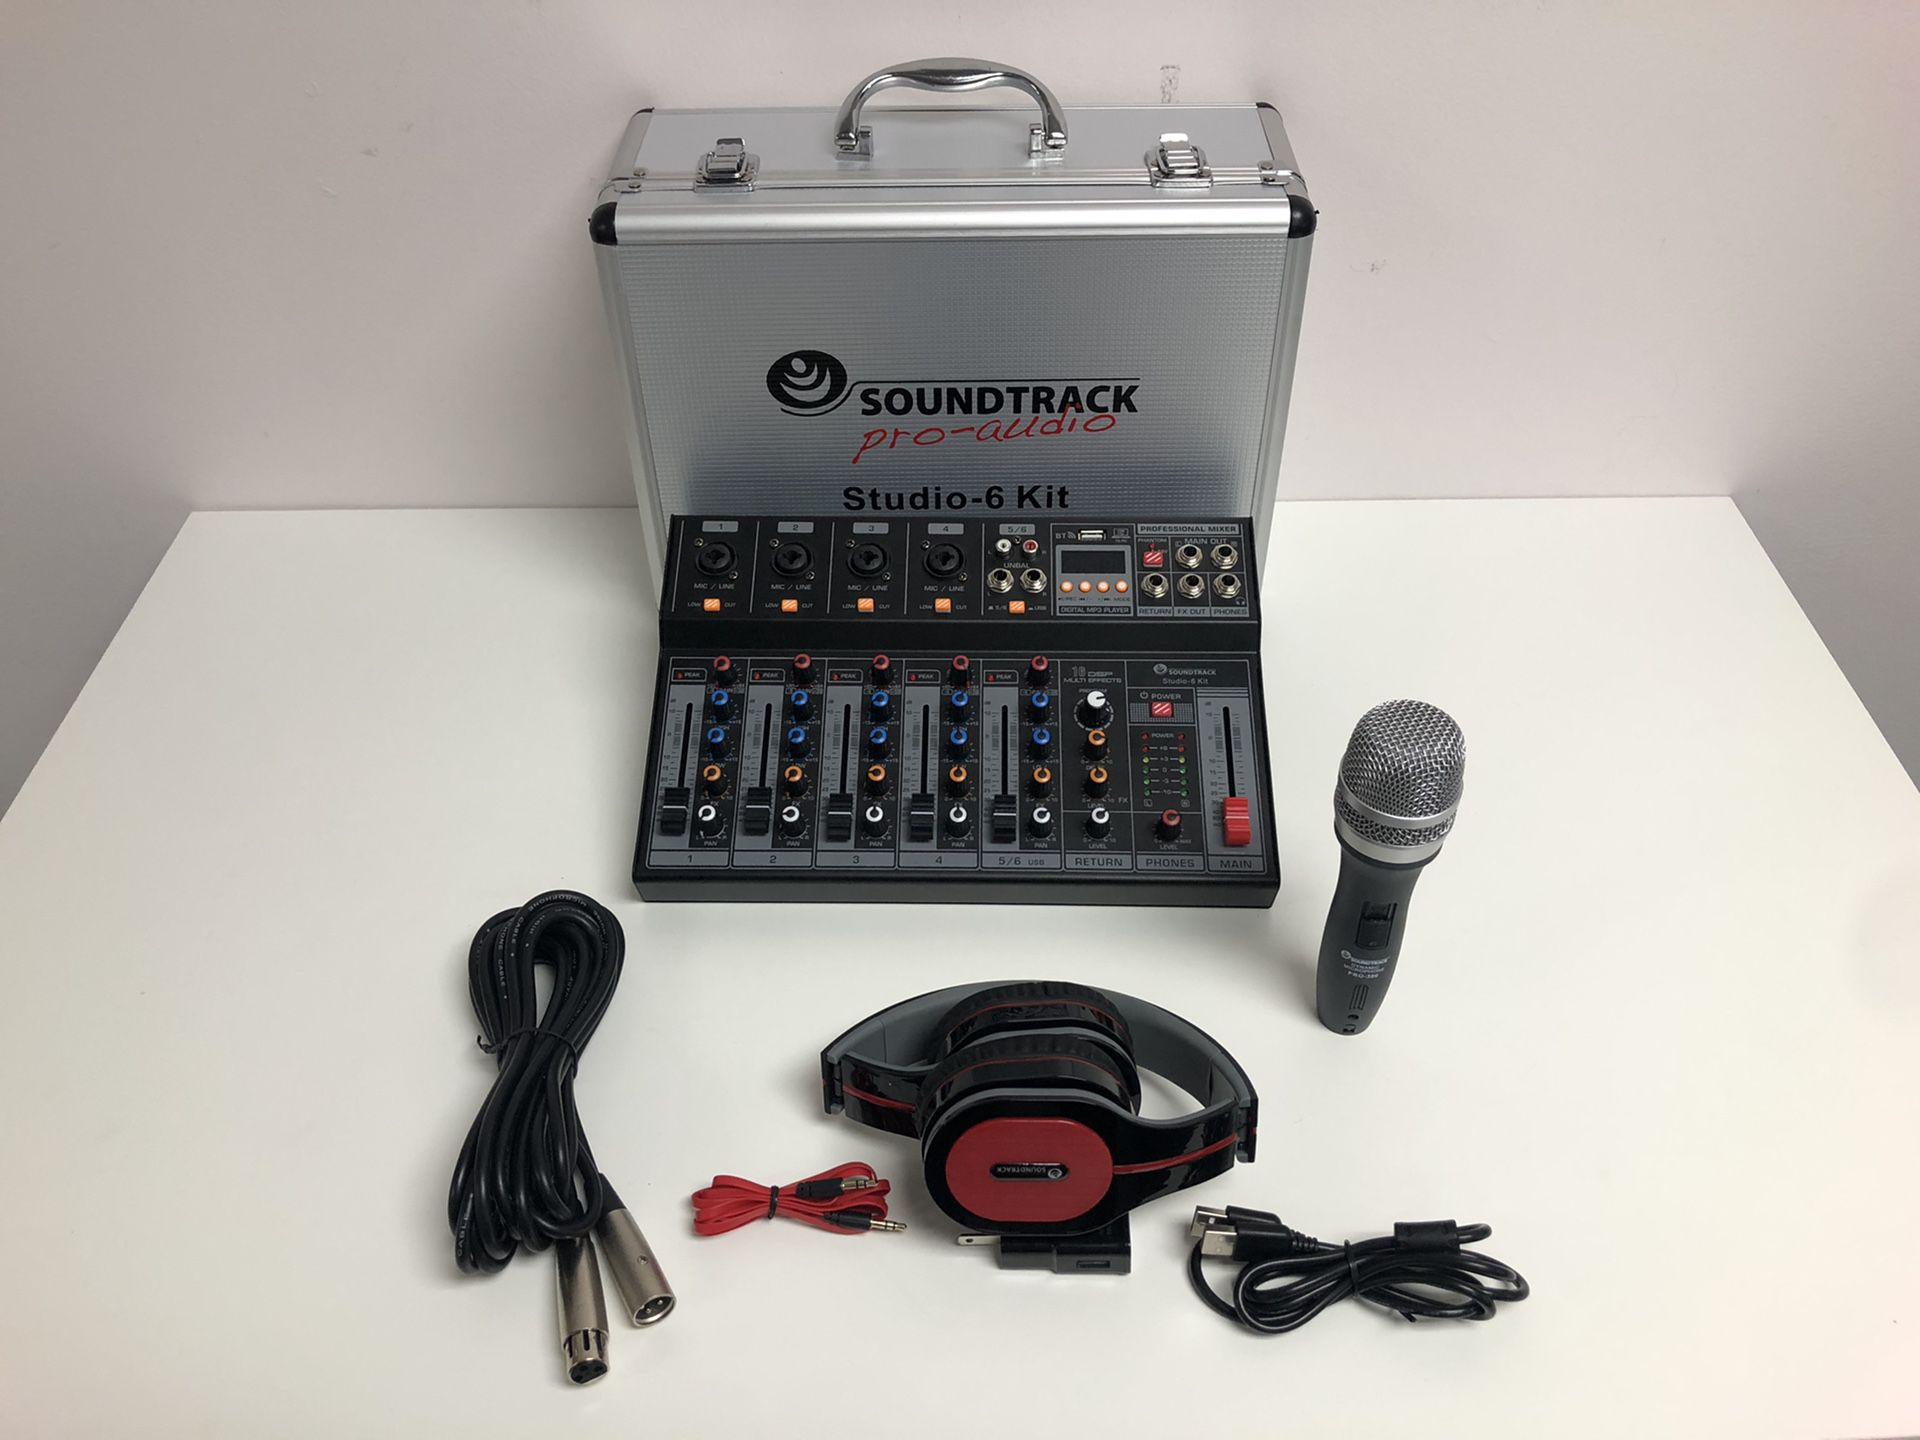 Studio 6 Kit.Mixer 6 Channels.Computers interface.Bluetooth, USB, MP3.Wired microphone.Sounds effects .